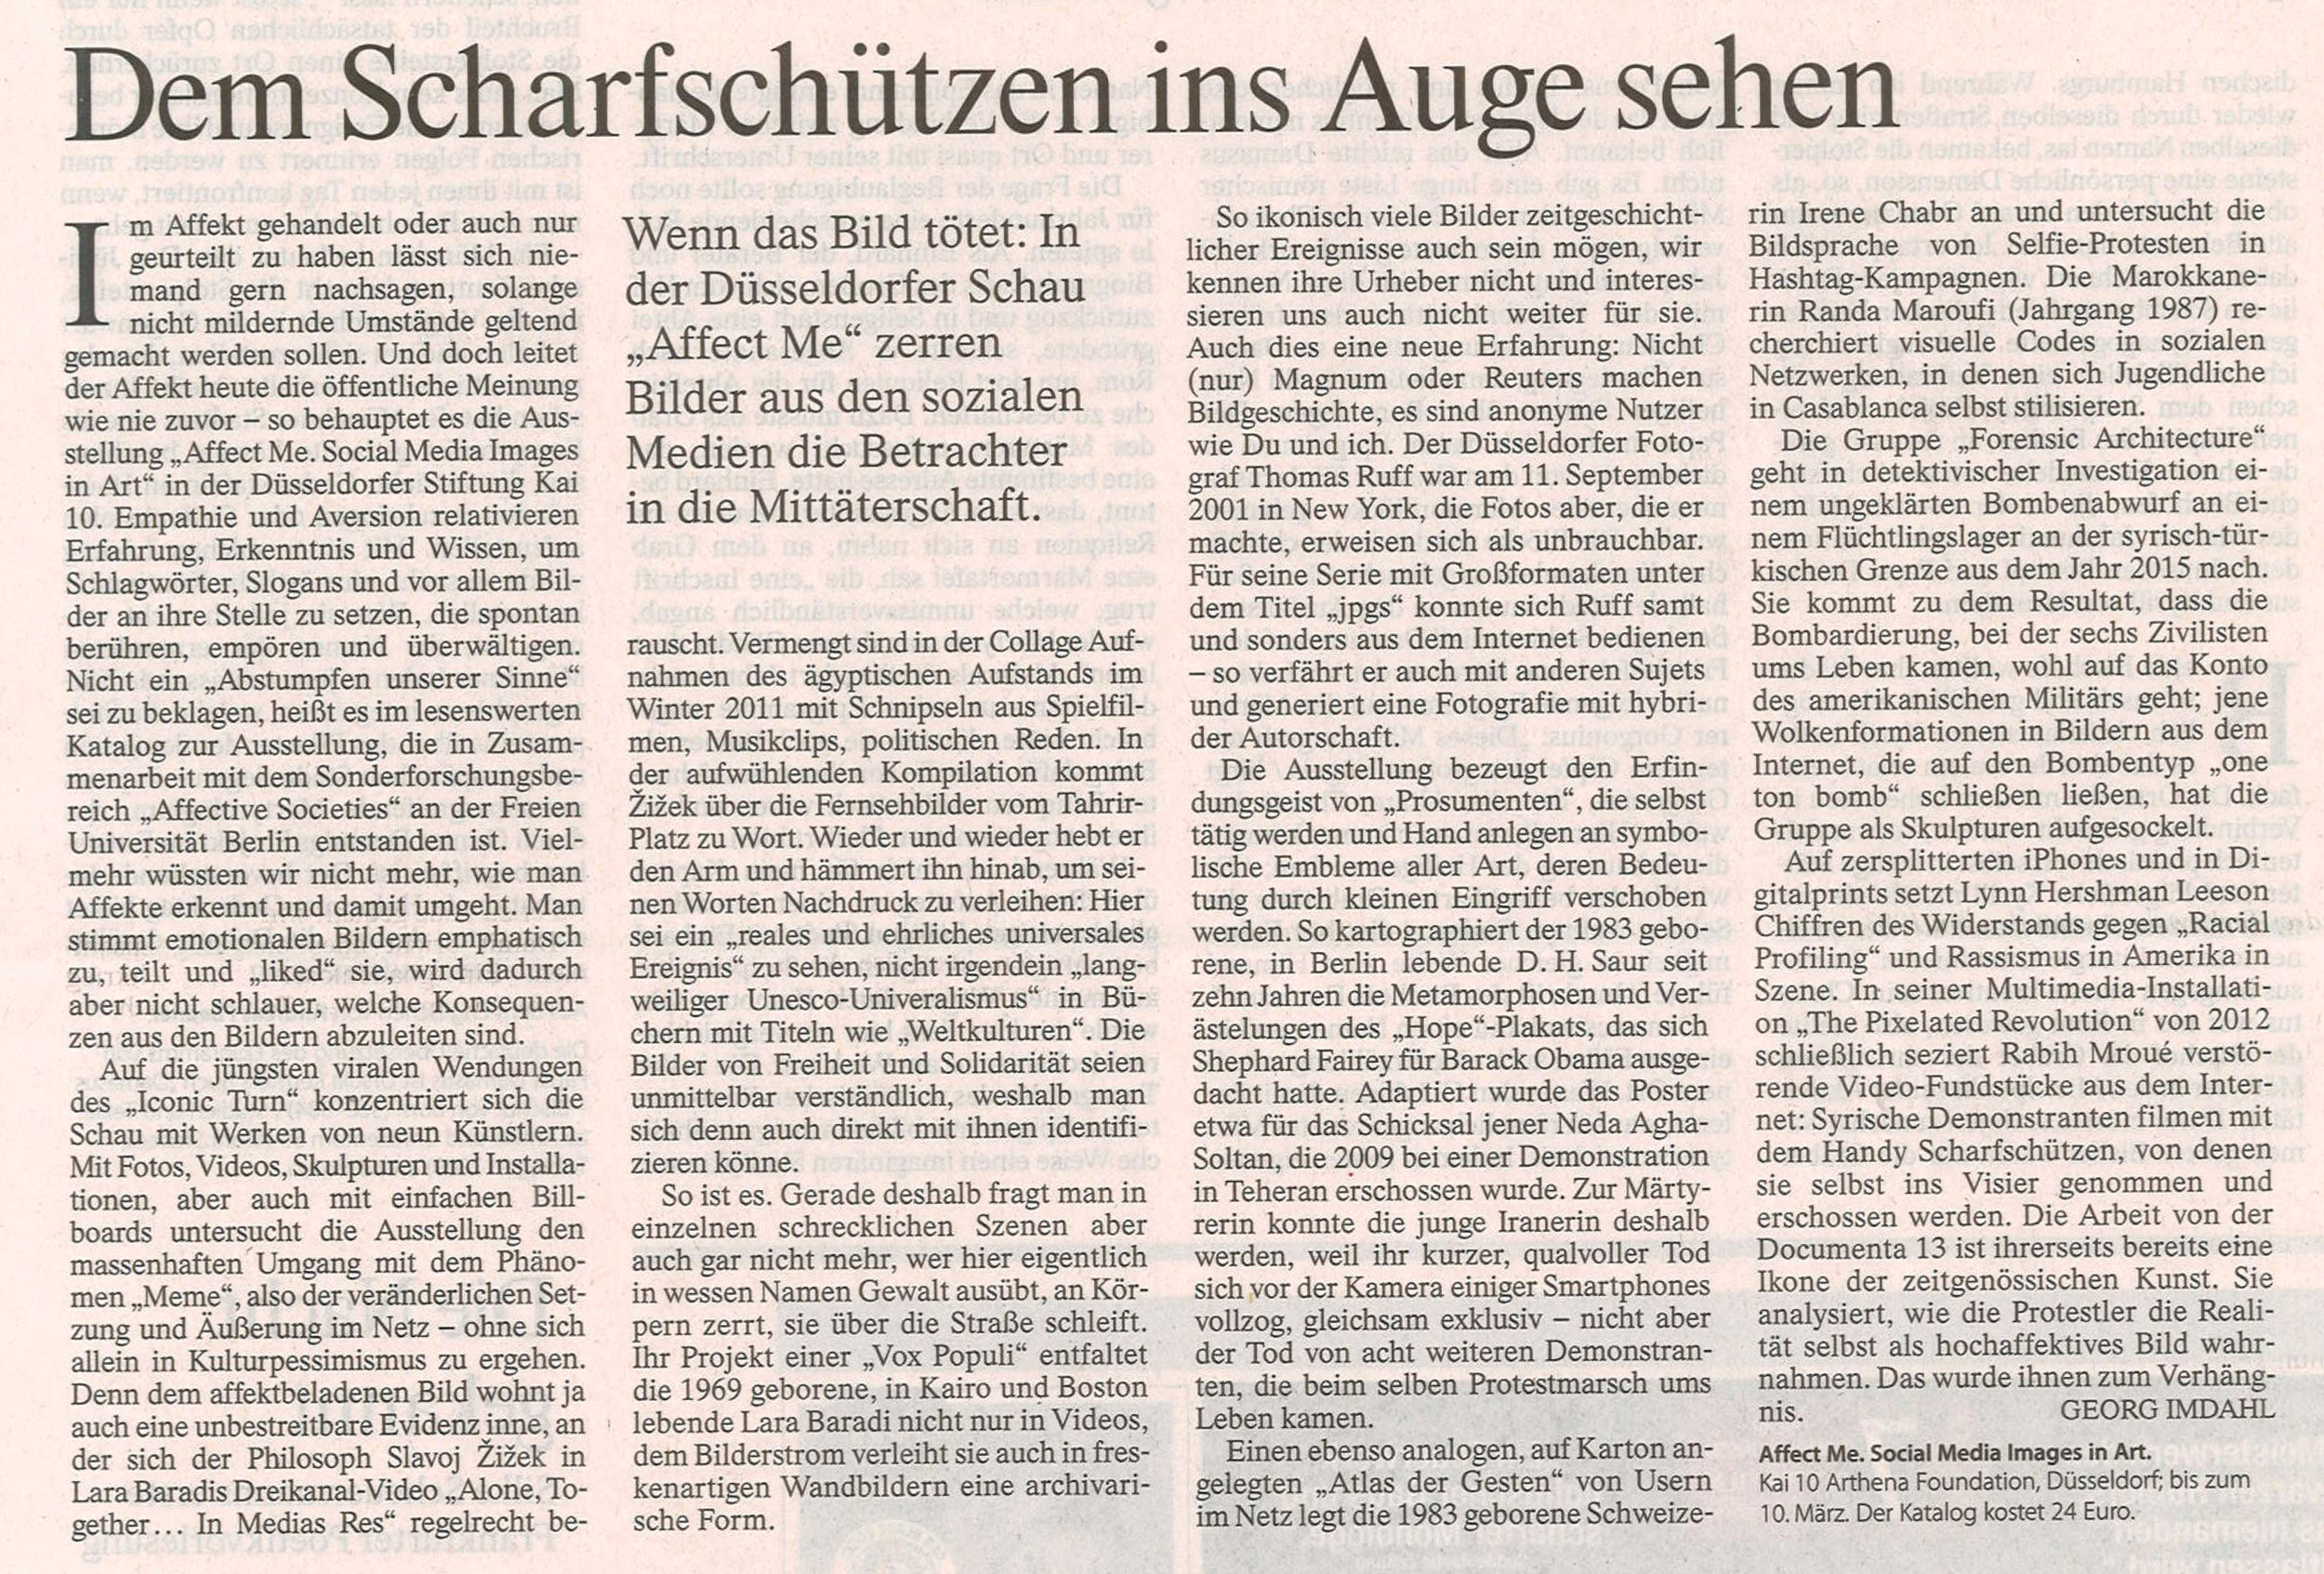 Review of the exhibition 'Affect Me' , KAI 10, Arthena Foundation, Dusseldorf, Germany, in the daily newspaper 'Frankfurter Allgemeine Zeitung' by Georg Imdahl, January 2018